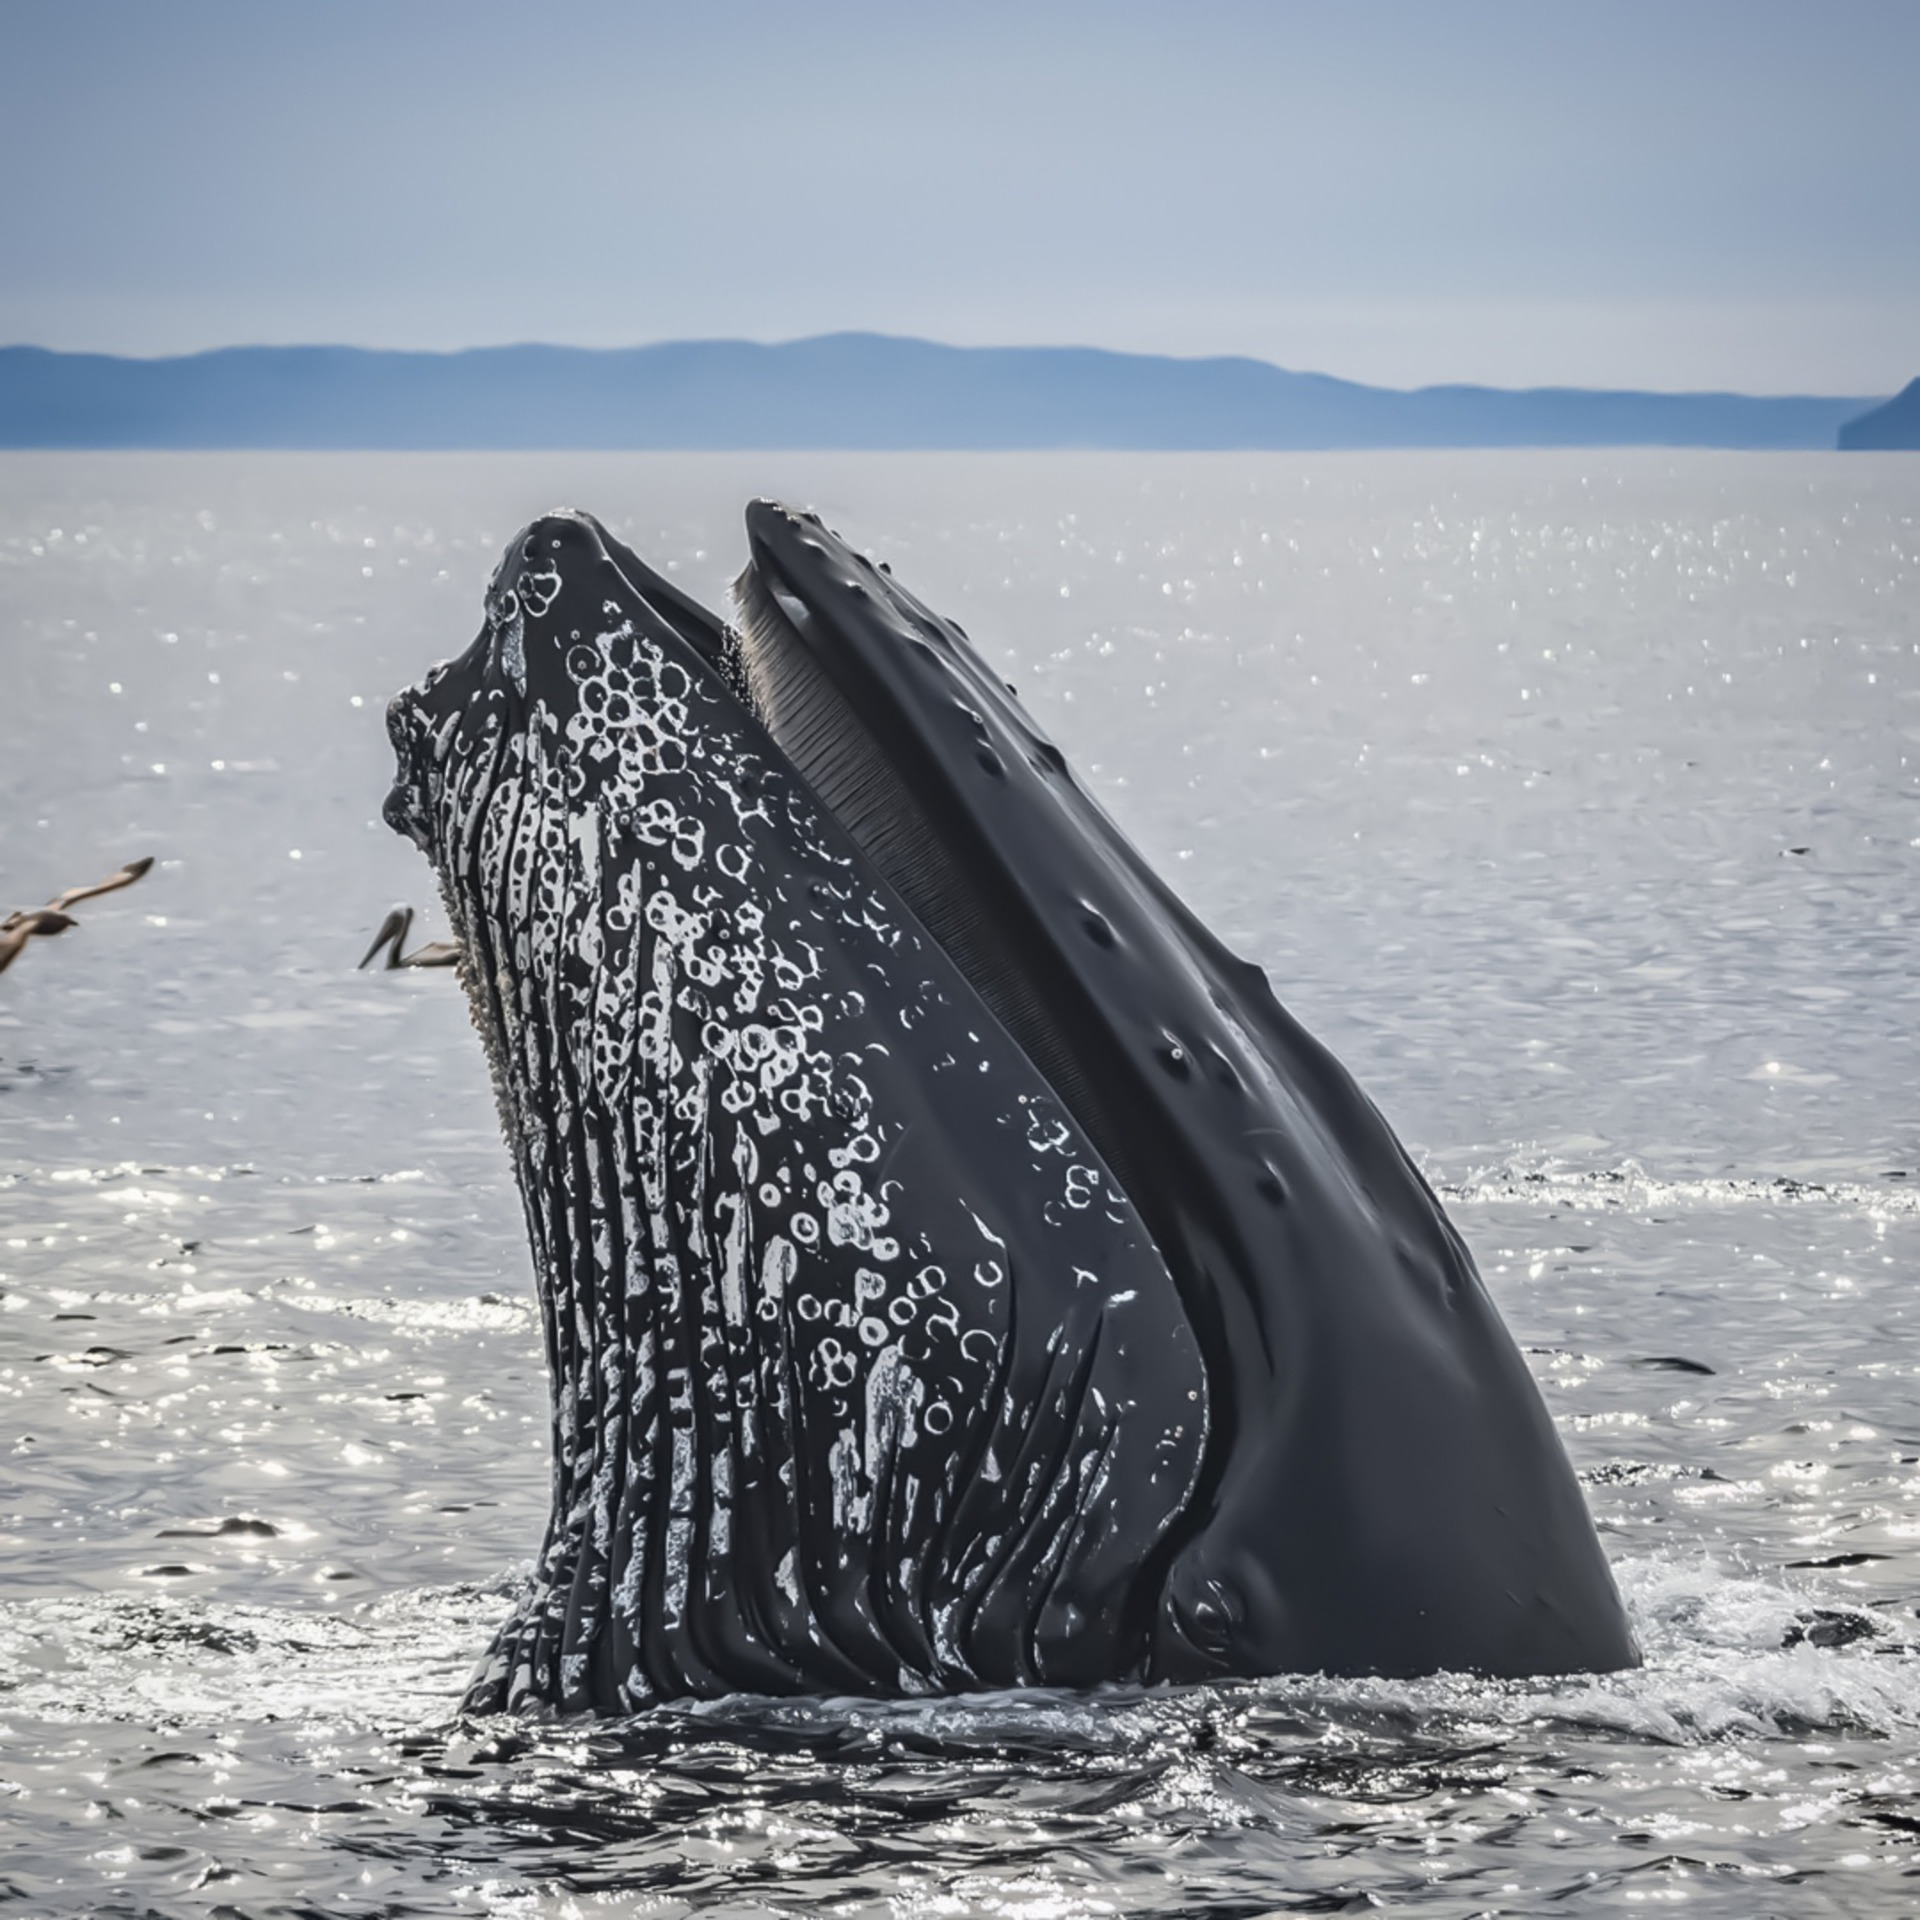 close up of a humback whale's face in ocean